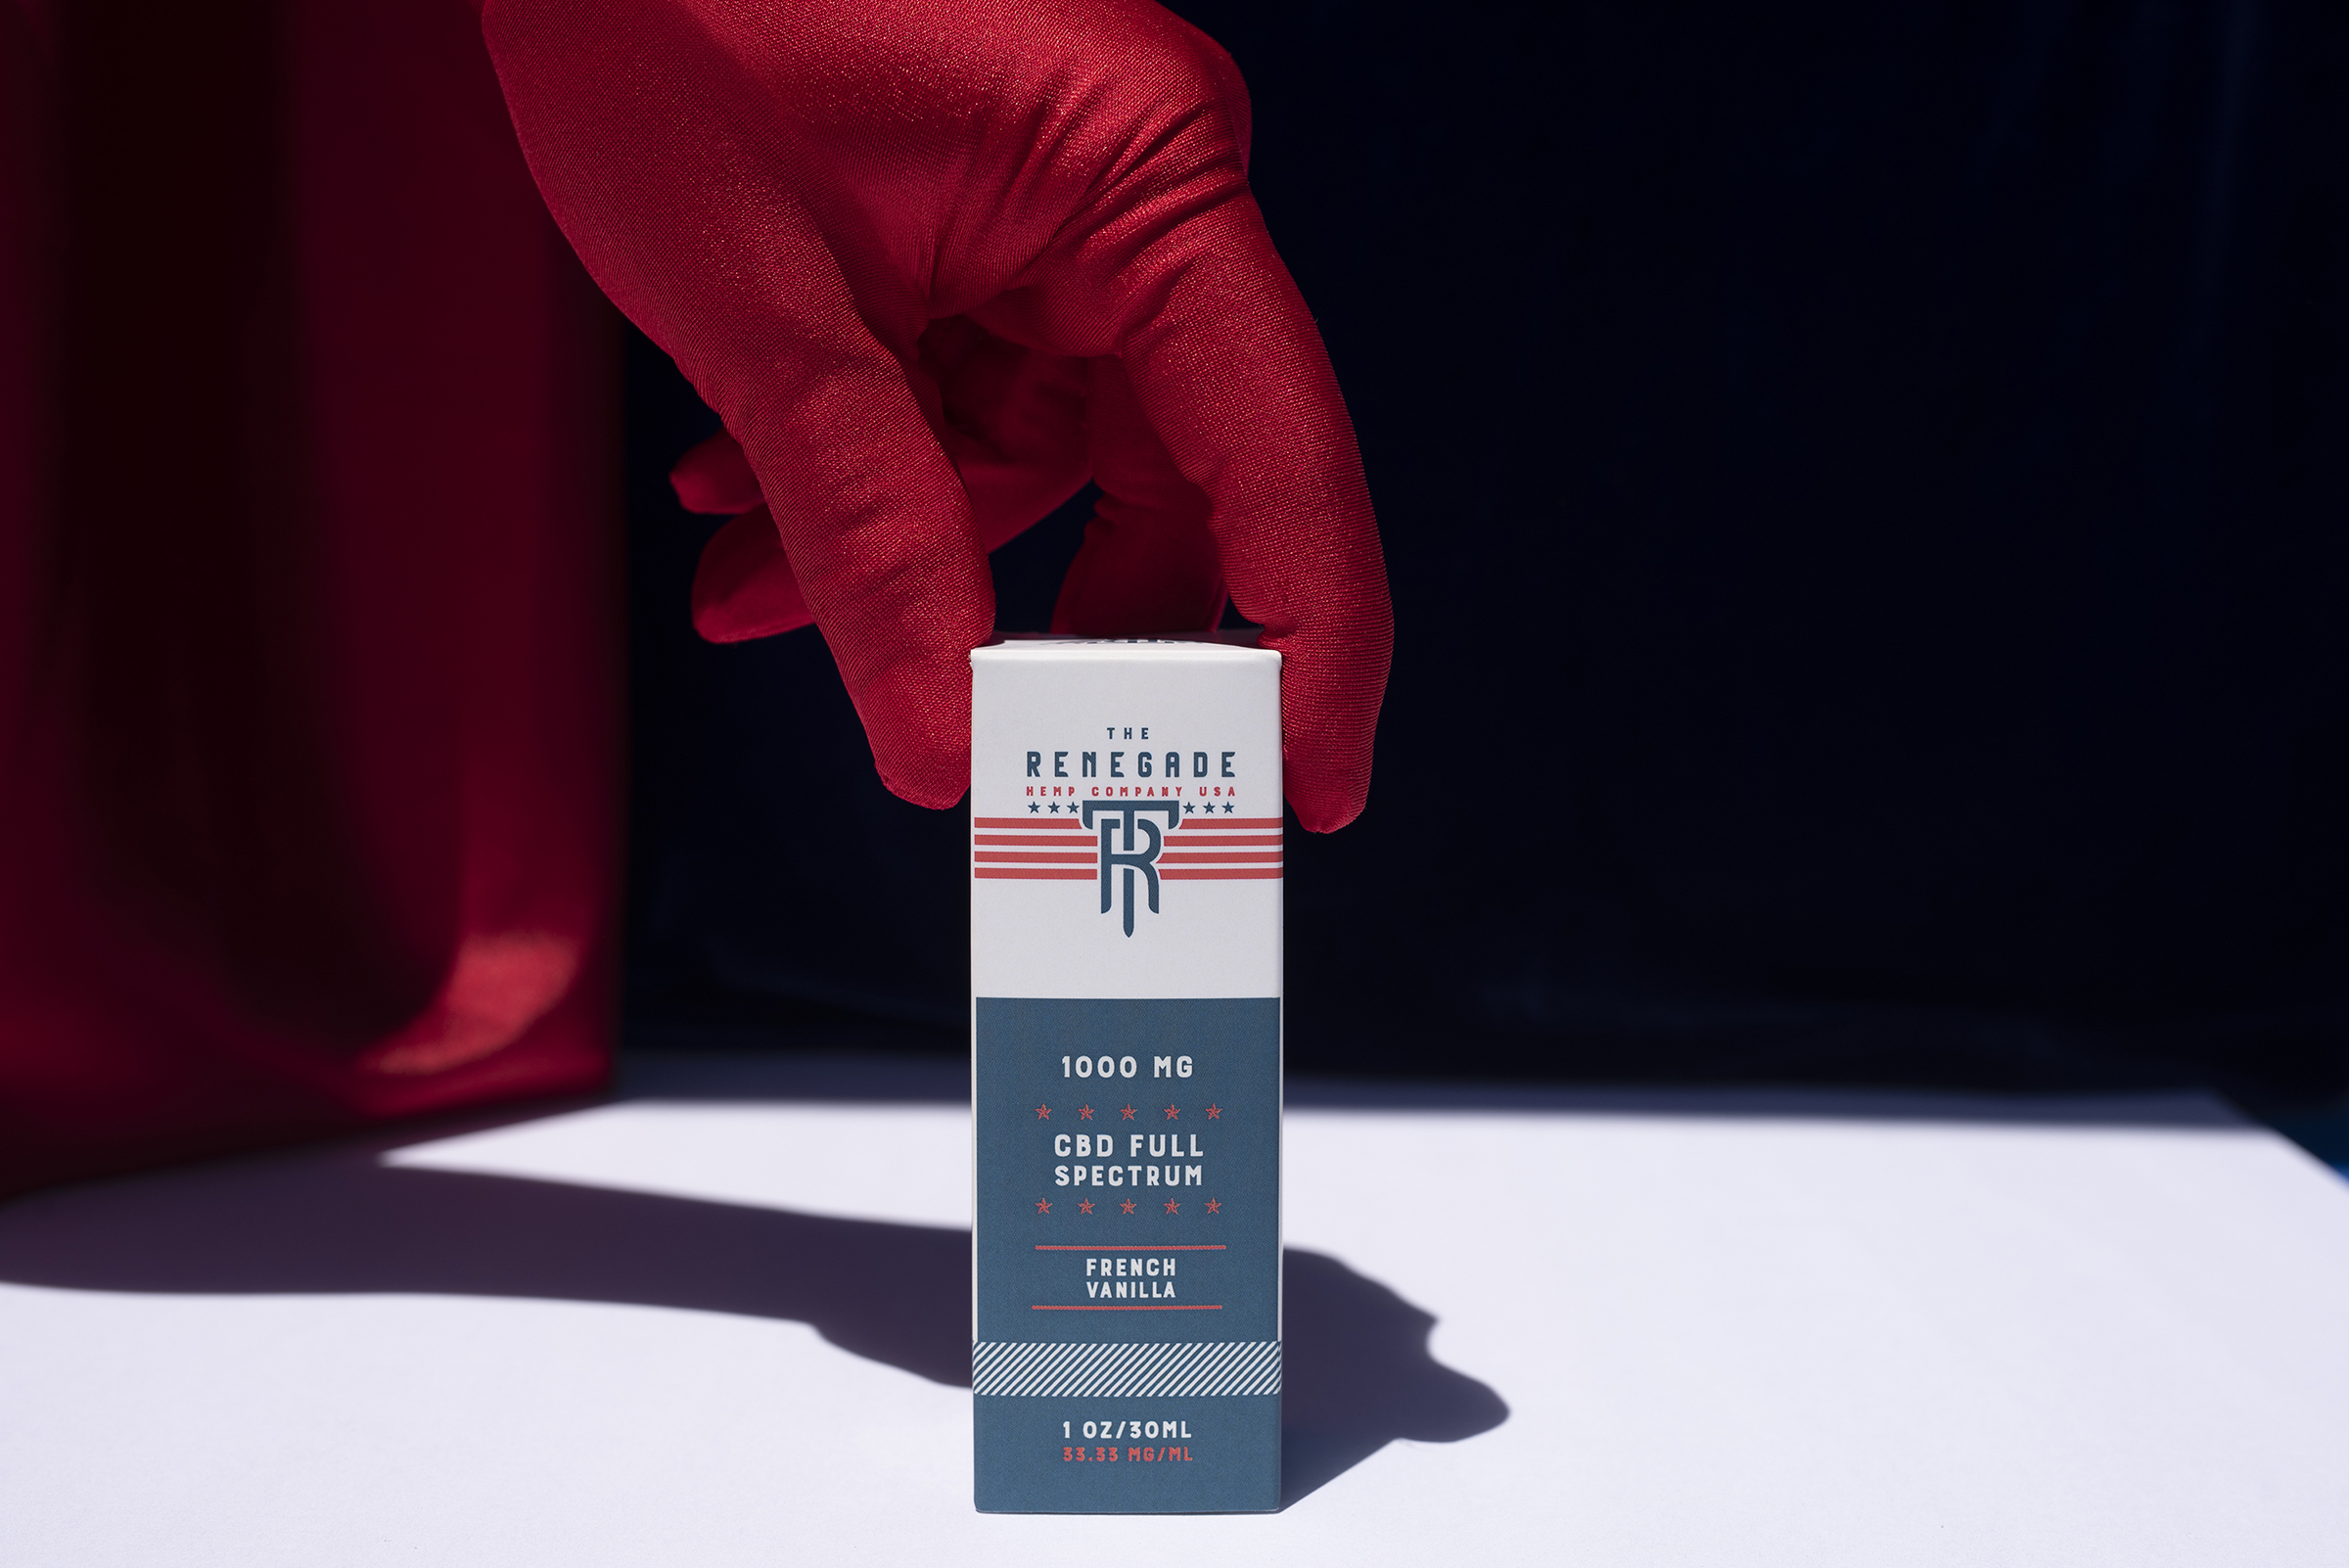 Eme Creates a Timeless Branding Packaging for CBD Products